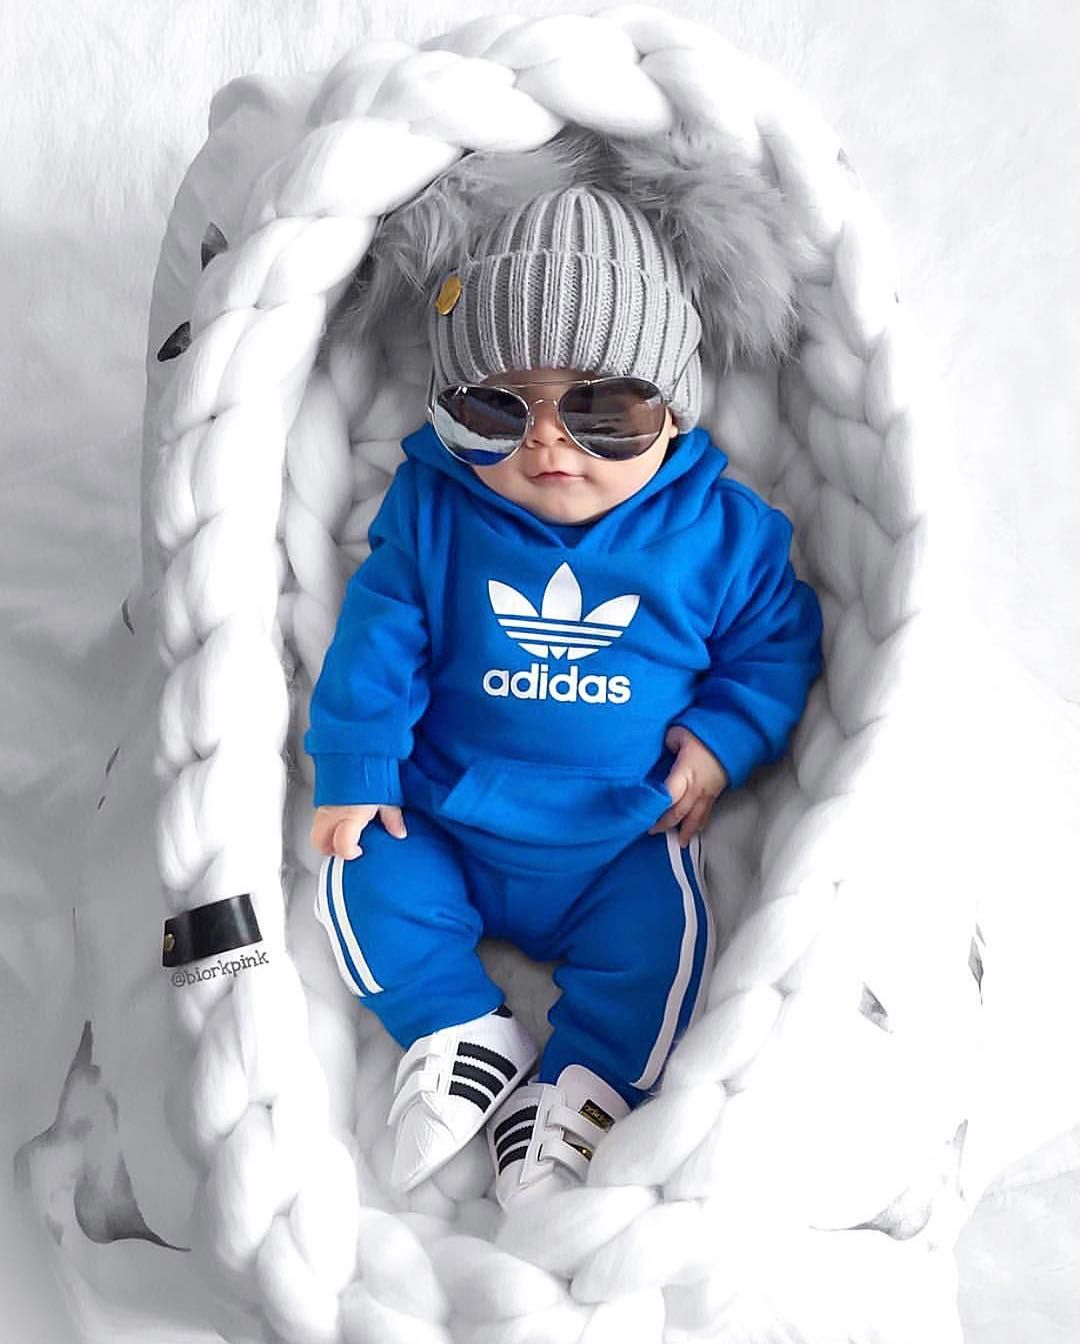 Mañana India robo  Too cool for School 😂😎💙 . | Very cute baby images, Baby boy outfits,  Very cute baby